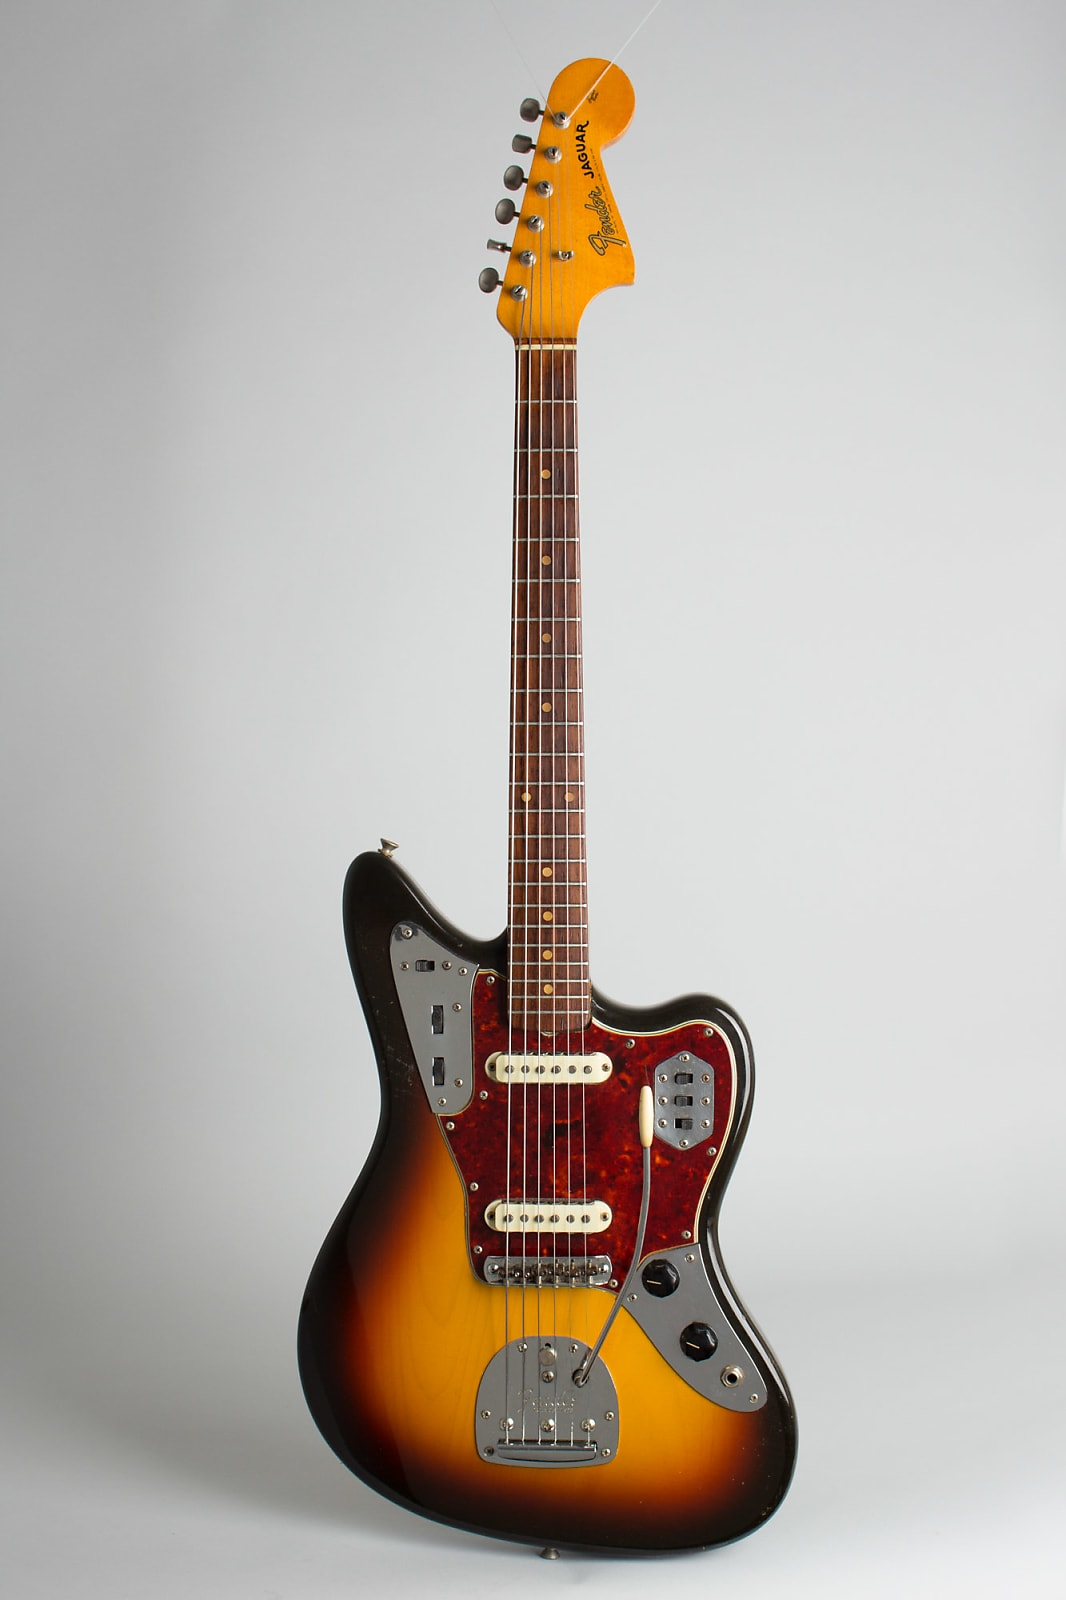 Fender  Jaguar Solid Body Electric Guitar (1964), ser. #L-32632, original brown tolex hard shell case.